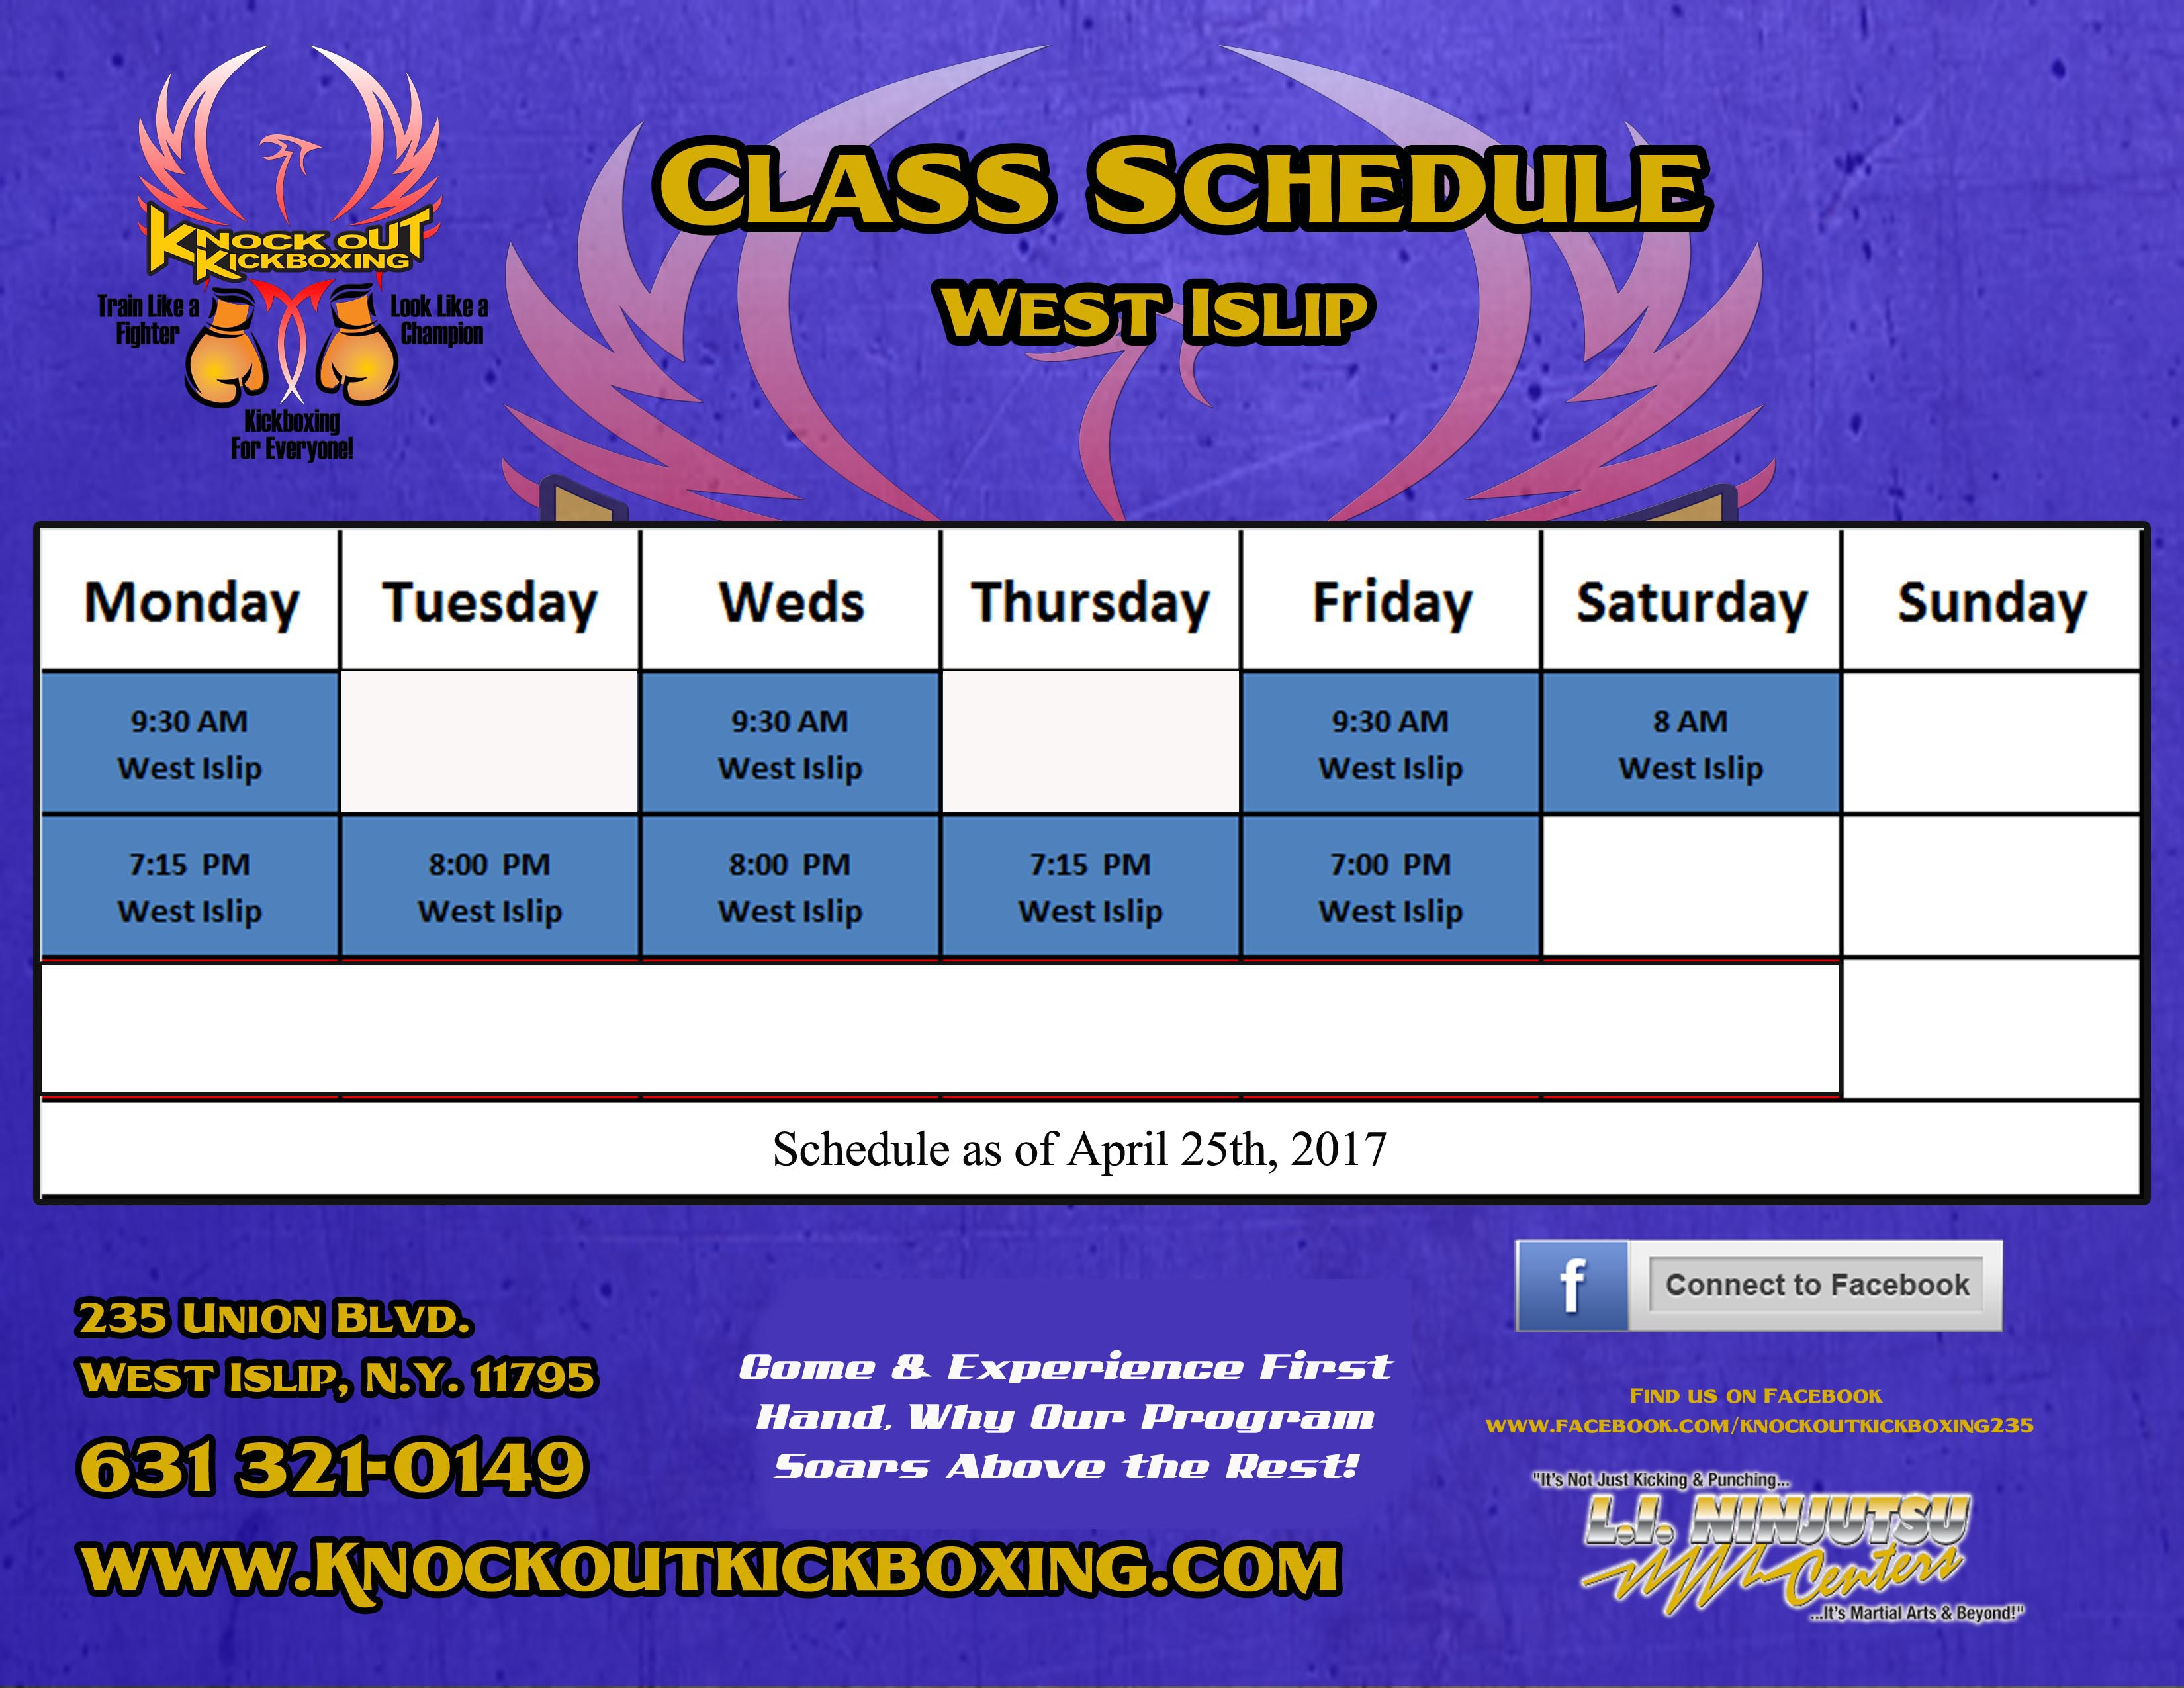 Knock Out Kickboxing Schedule West Isip April of 2017